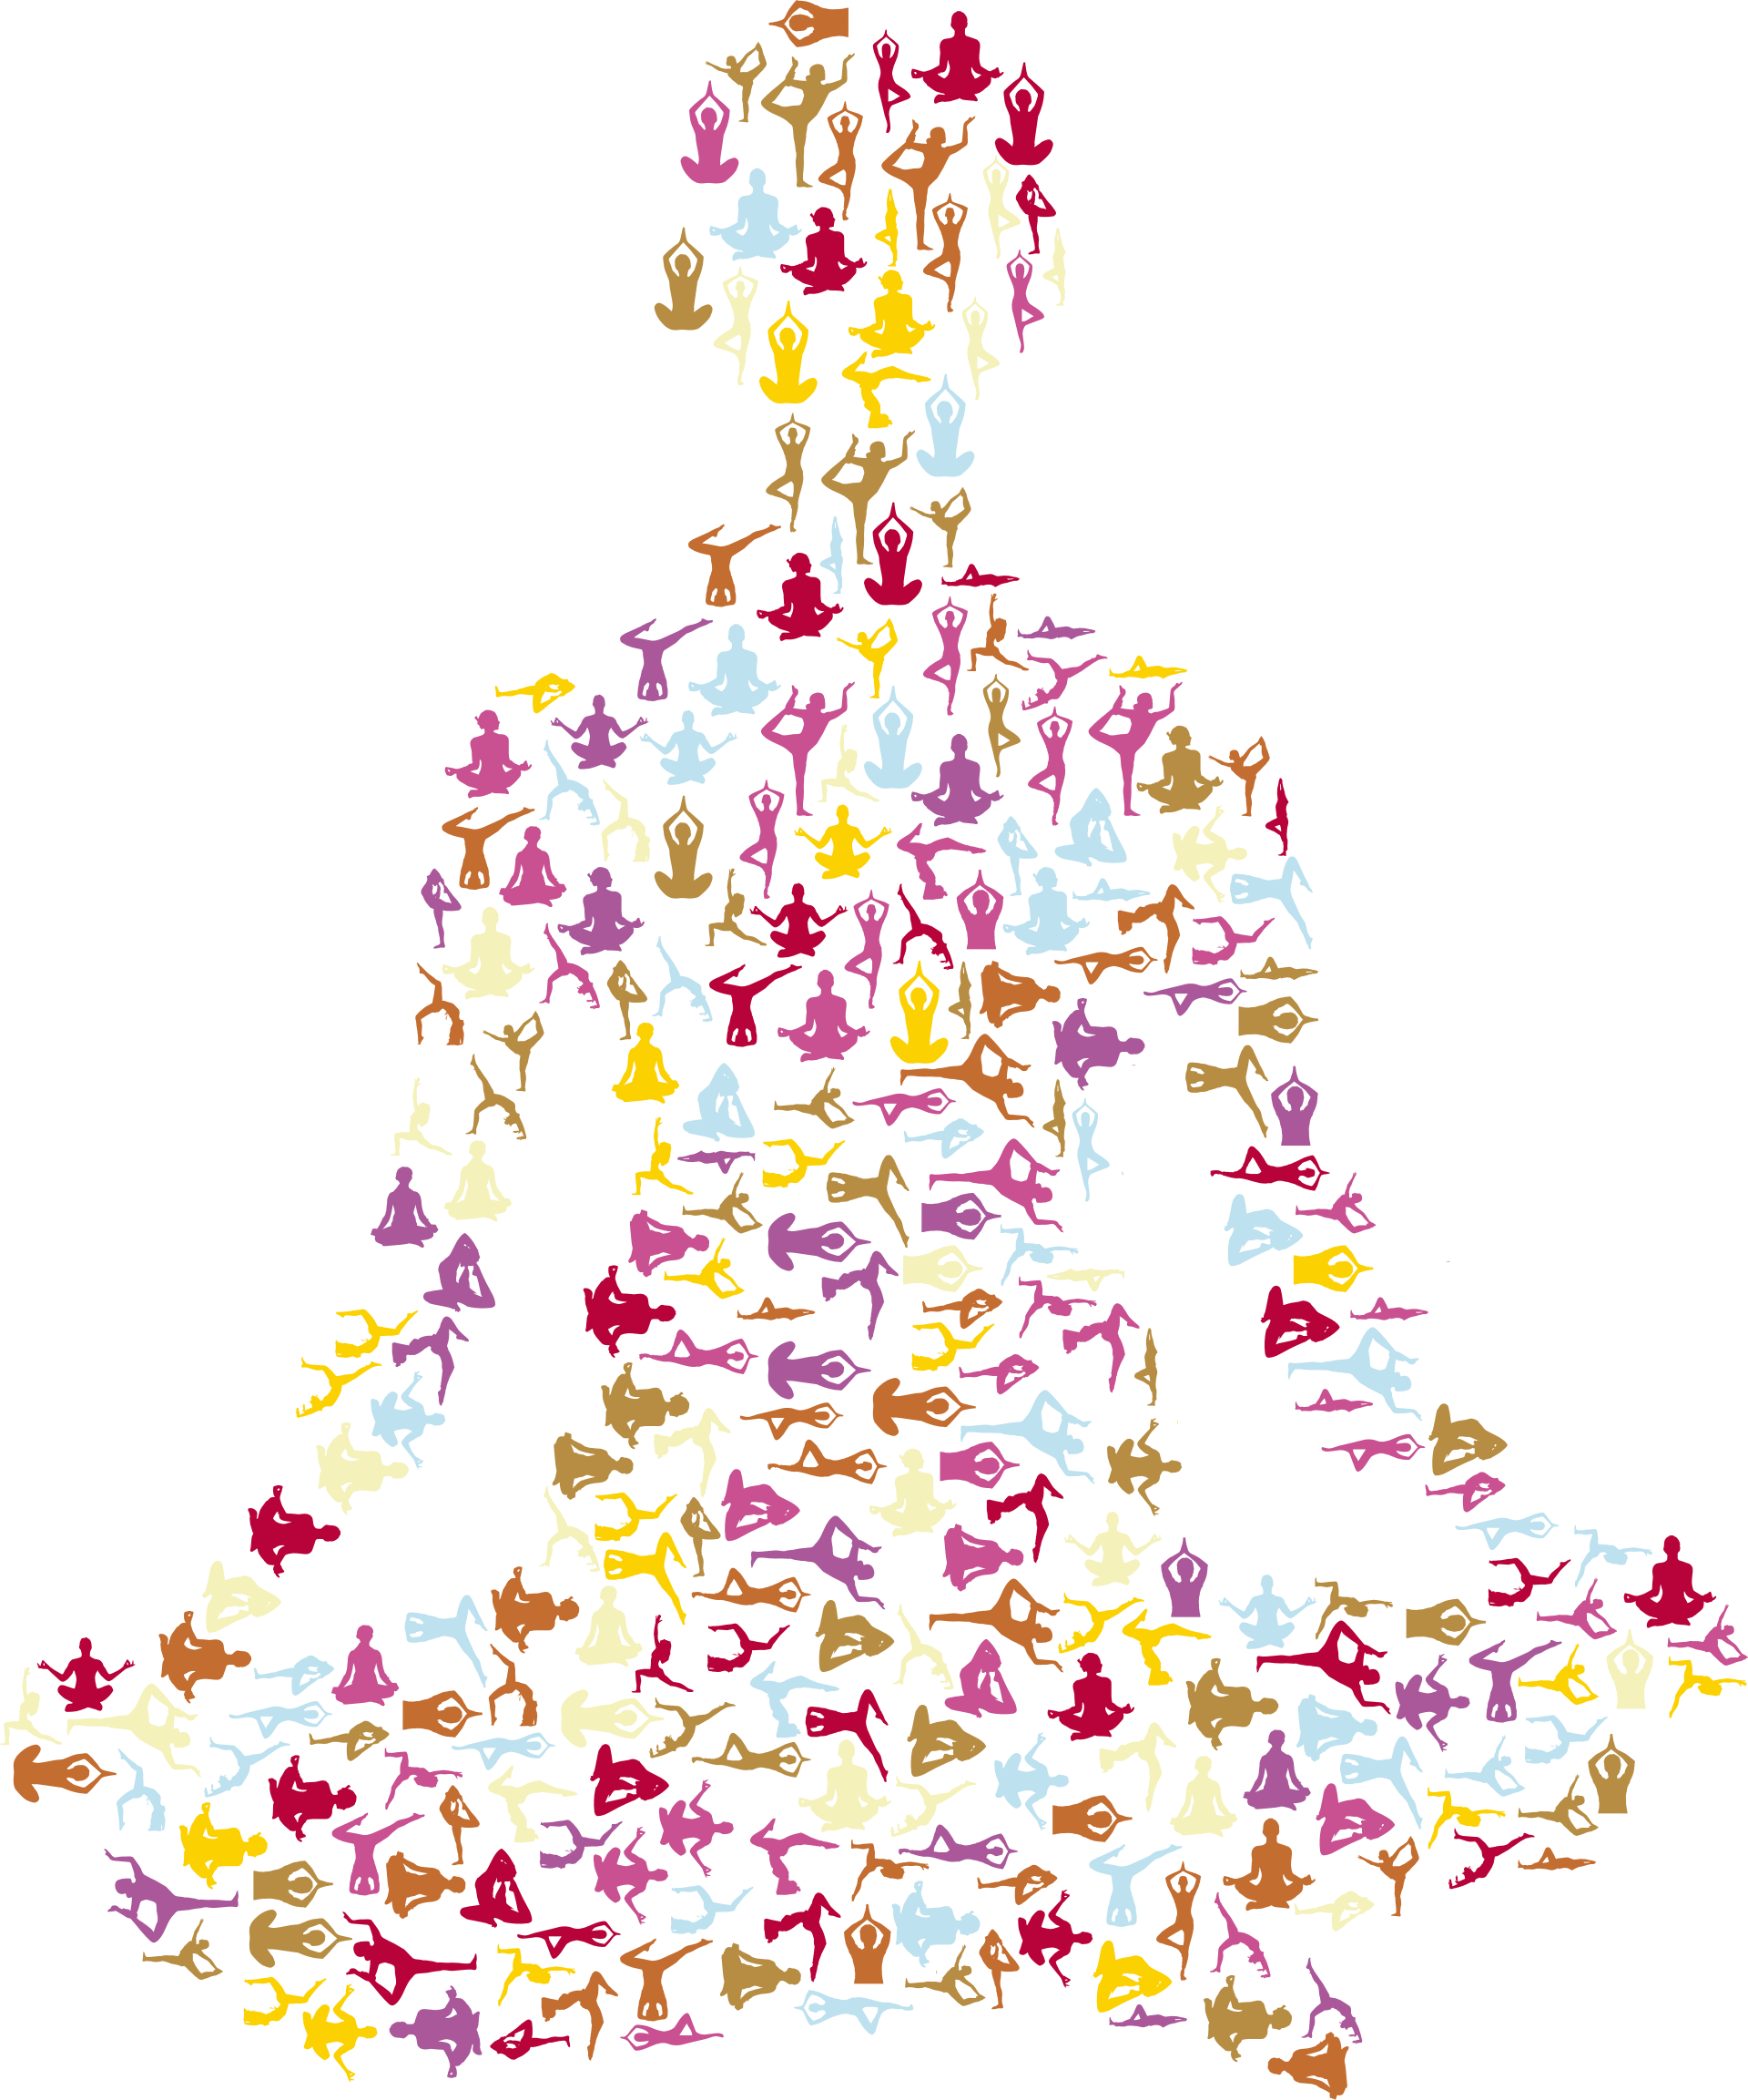 Yoga clip clipart. Female pose silhouette fractal